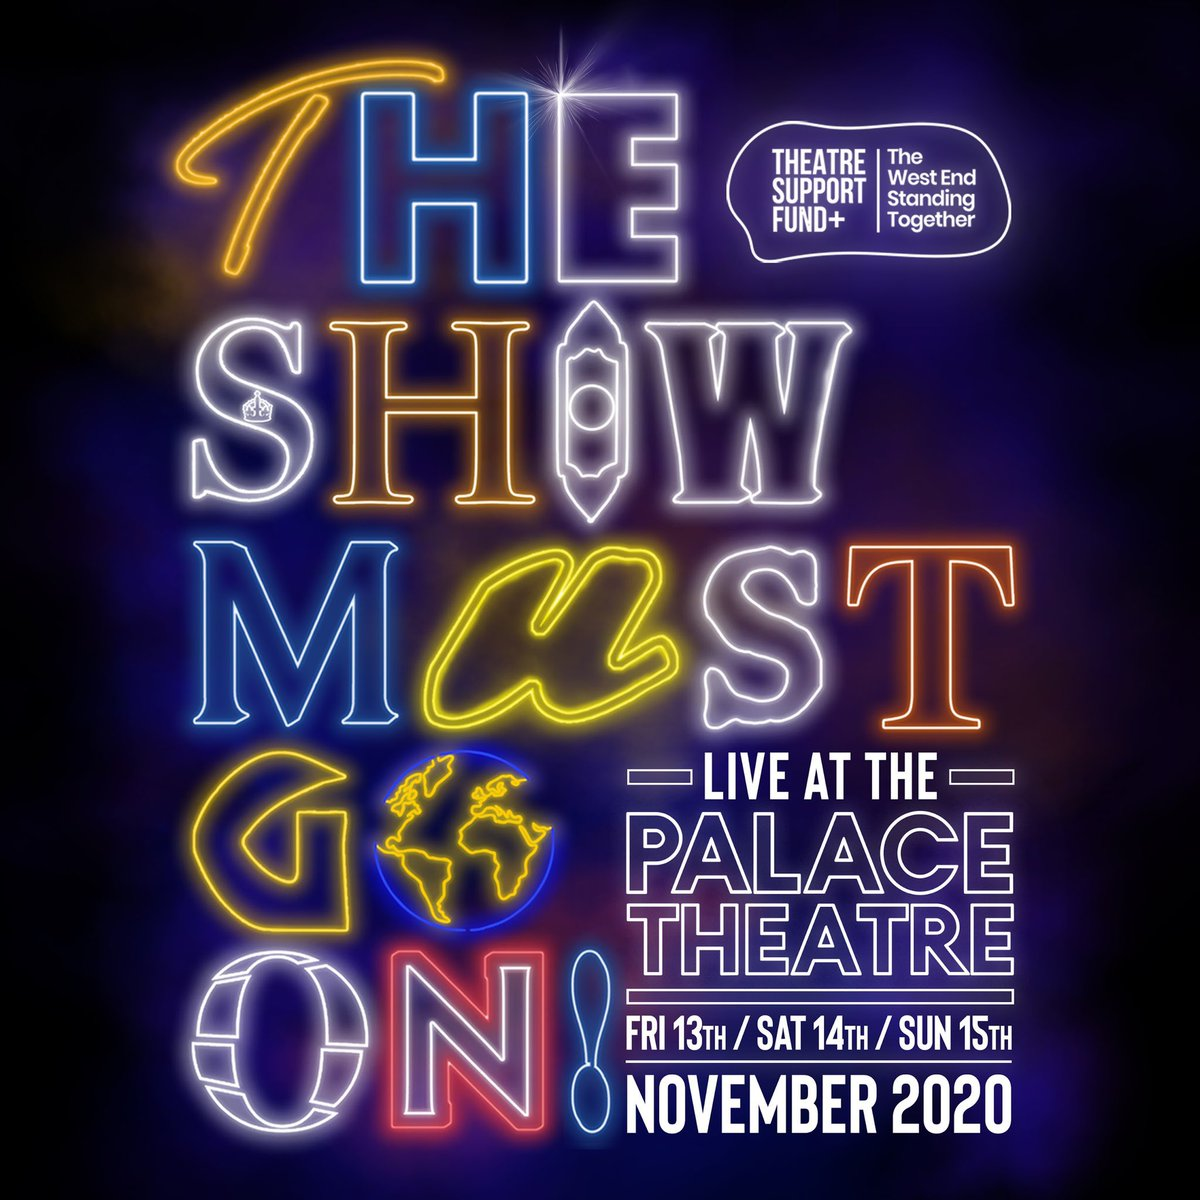 Just booked Tickets for the Saturday 14th at 7pm perf. Excited! THE SHOW MUST GO ON! LIVE AT THE PALACE THEATRE. With all profits going to @actingforothers and #fleabagforcharity to support our wonderful industry. 💚  For more details and tickets visit ⬇️